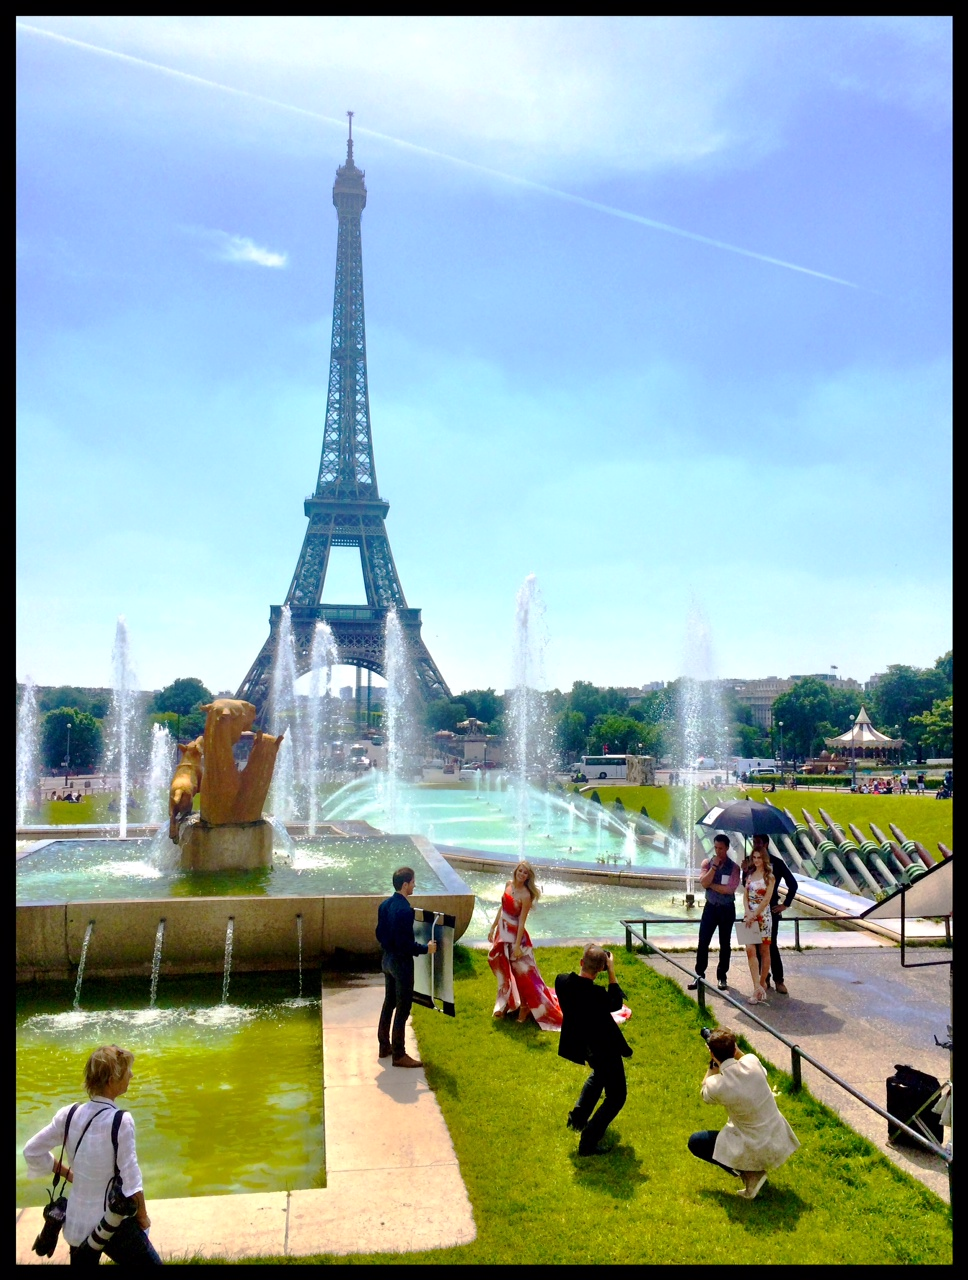 Still of our shoot in Paris in Front of the Eiffel Tower